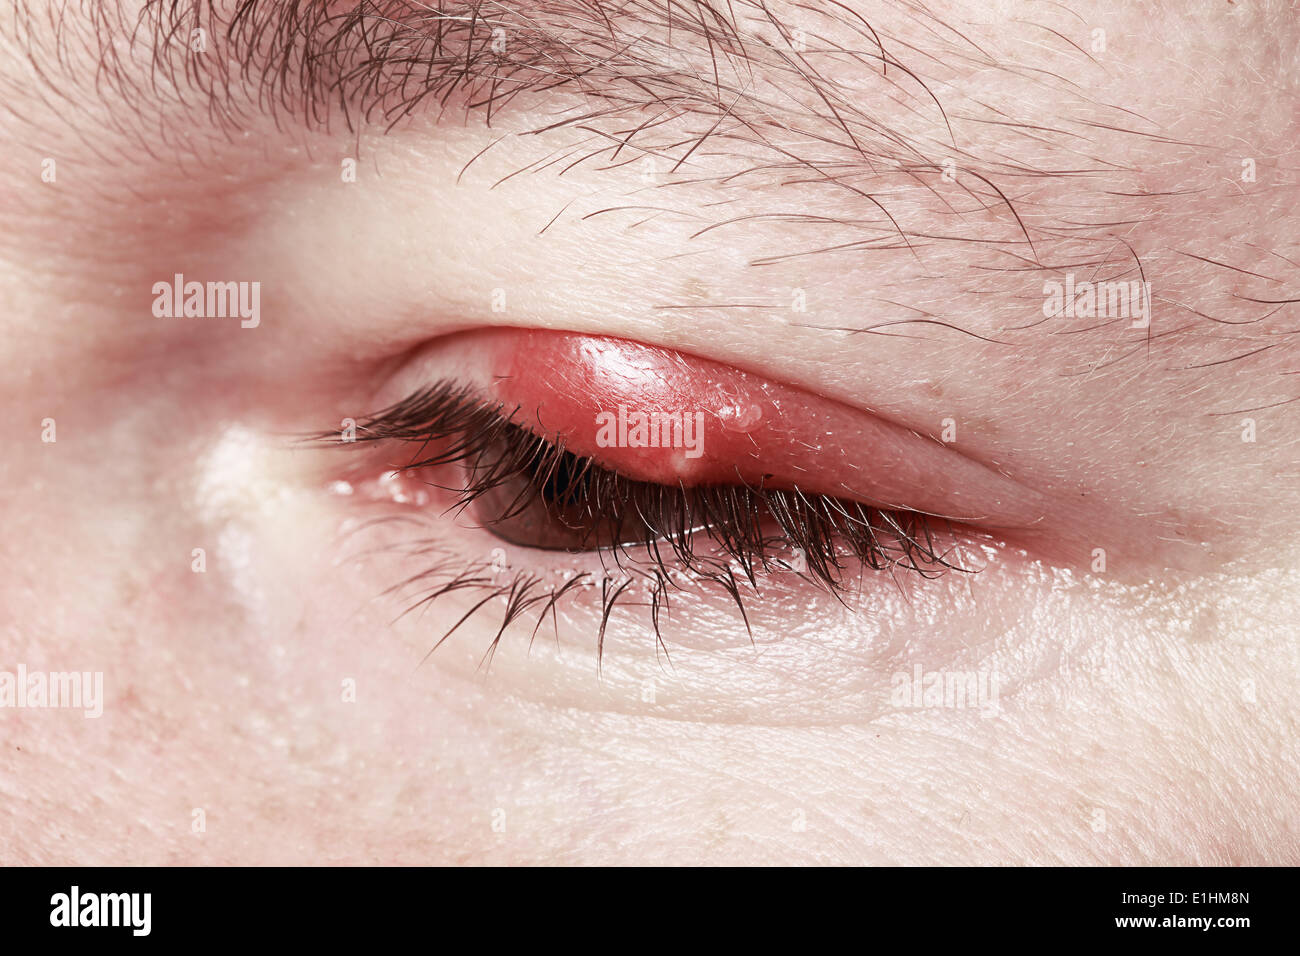 Sore Red Eye. Chalazion and Blepharitis. Inflammation - Stock Image